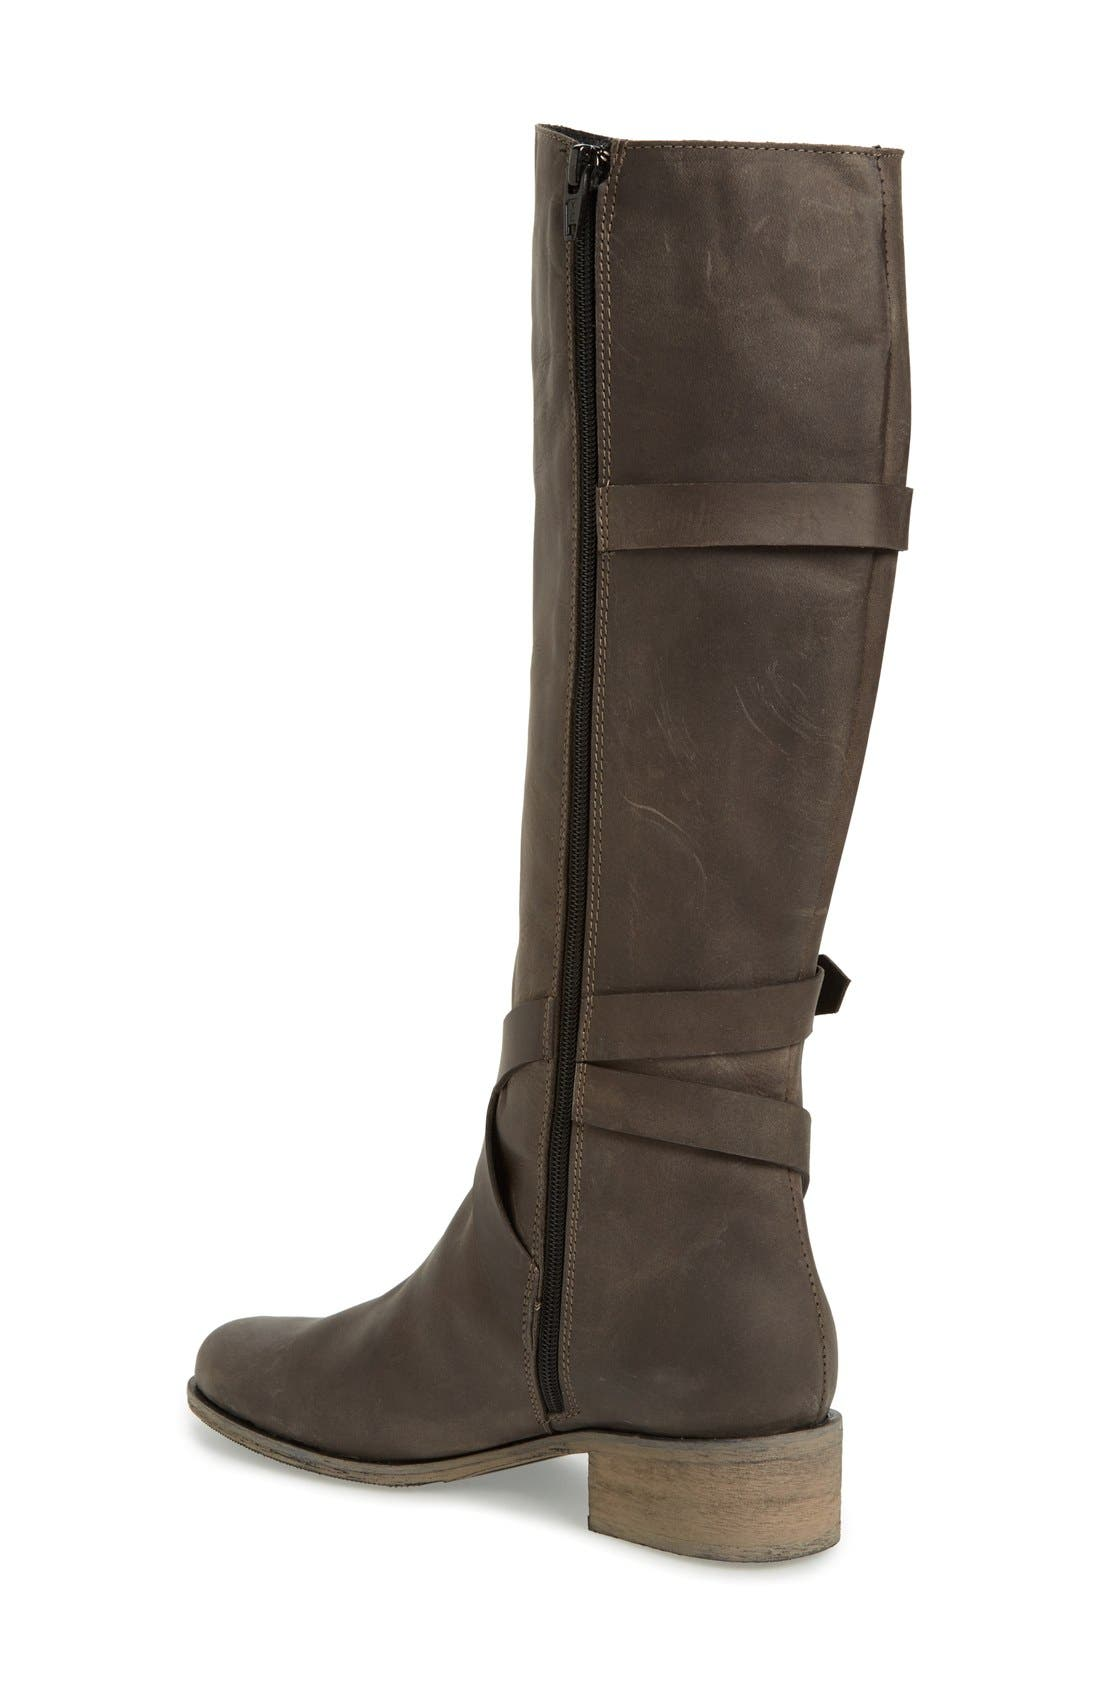 'Germana' Riding Boot,                             Alternate thumbnail 2, color,                             001